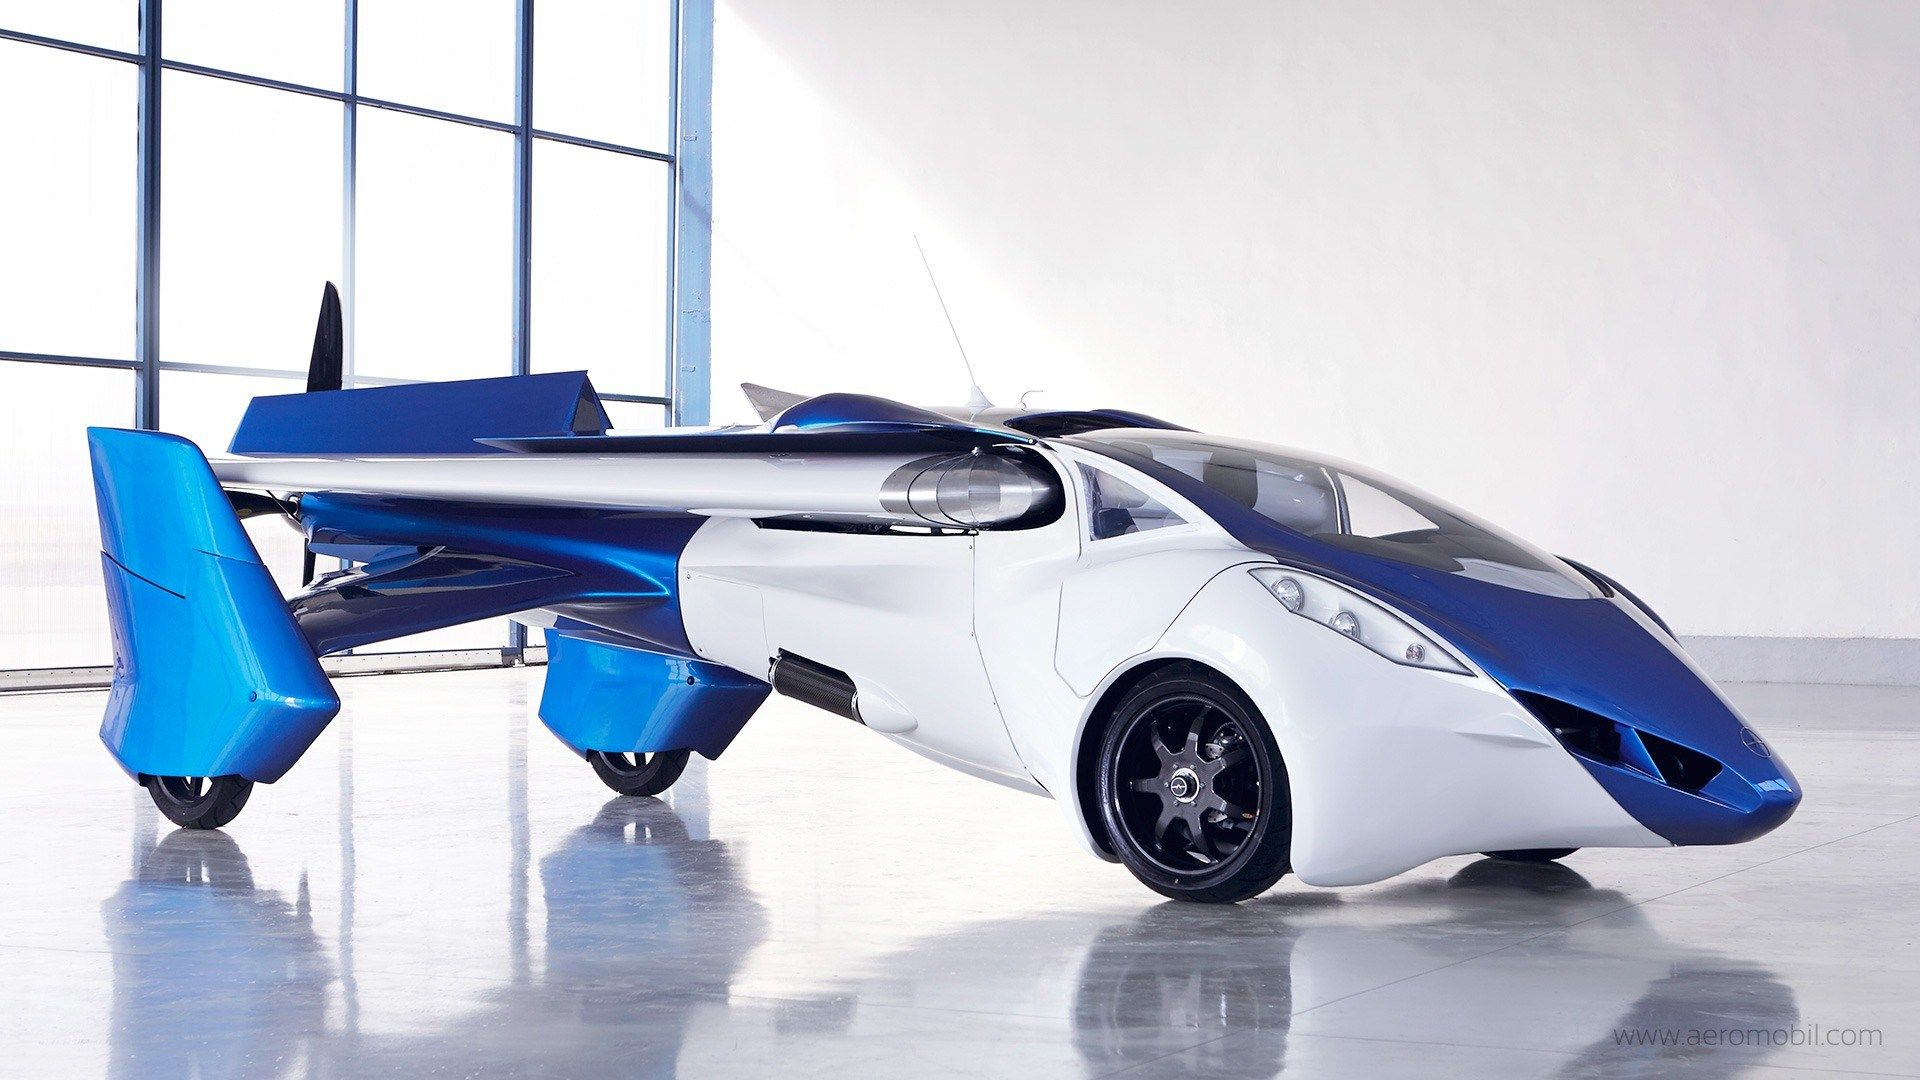 toyota patent filing shows another hope for the flying car. tech